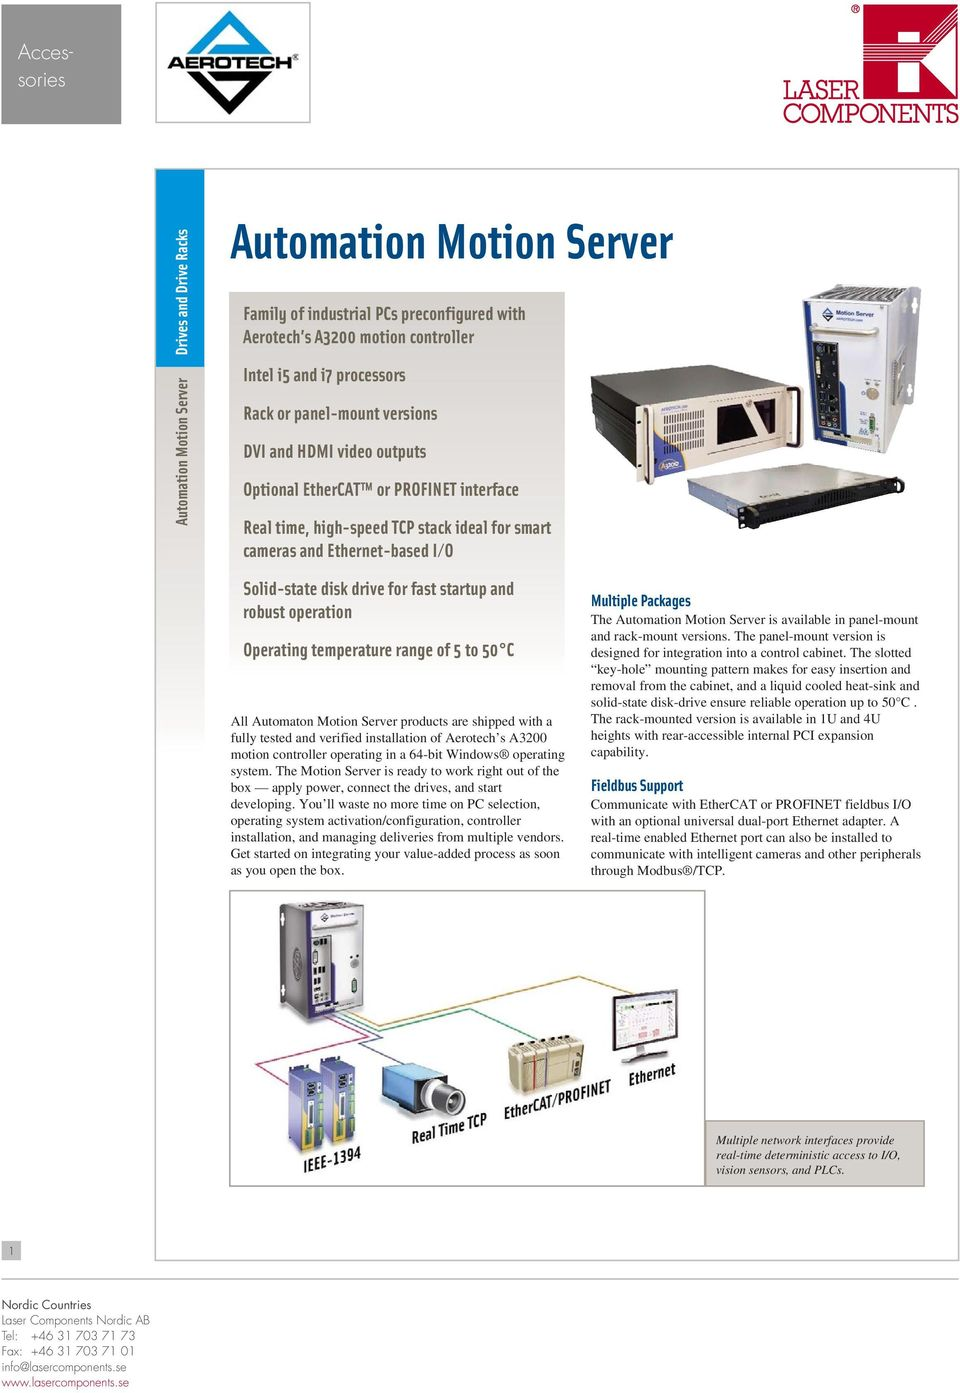 of 5 to 50 C All Automaton Motion Server products are shipped with a fully tested and verified installation of Aerotech s A3200 motion controller operating in a 64-bit Windows operating system.